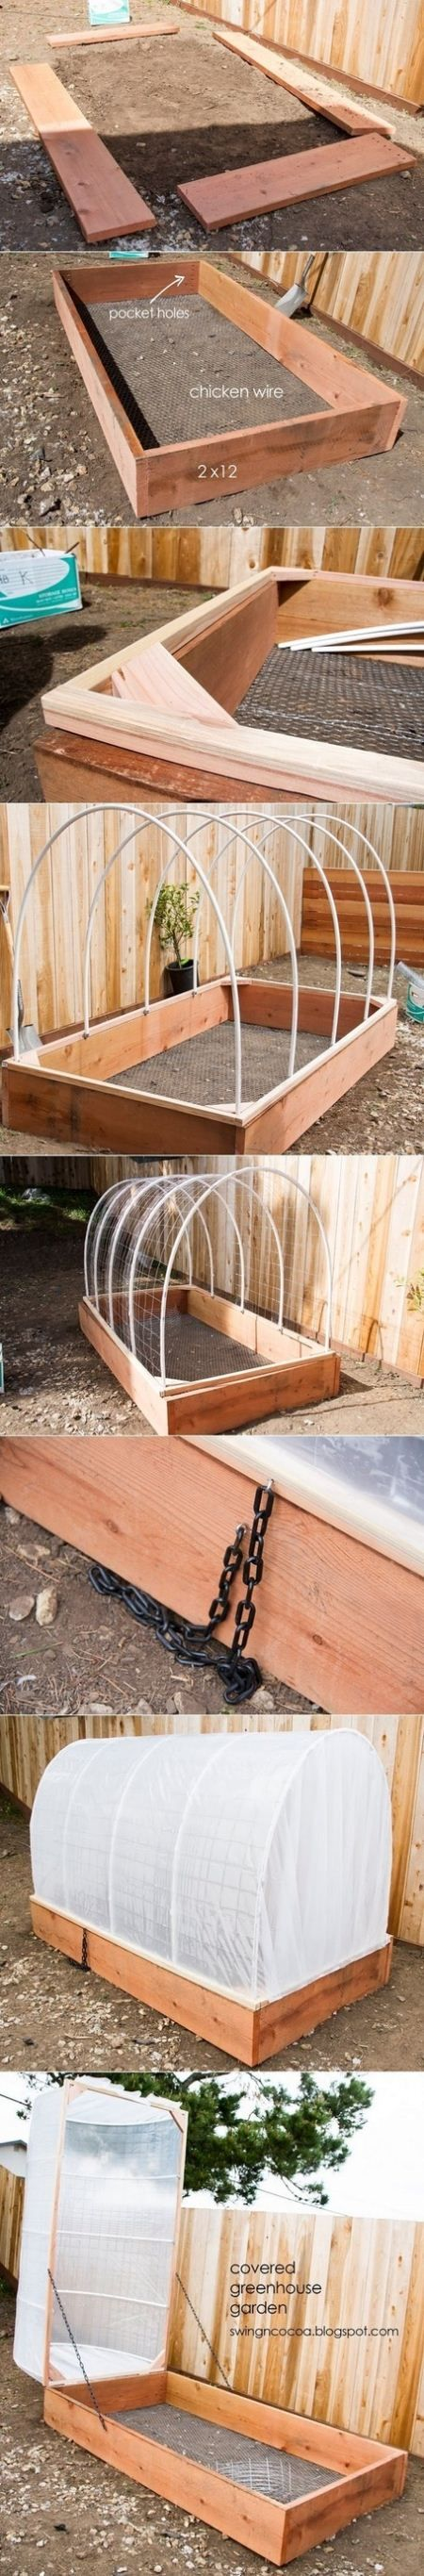 Covered greenhouse. Protect new garden against the deer that love to eat everything I plant in my yard.